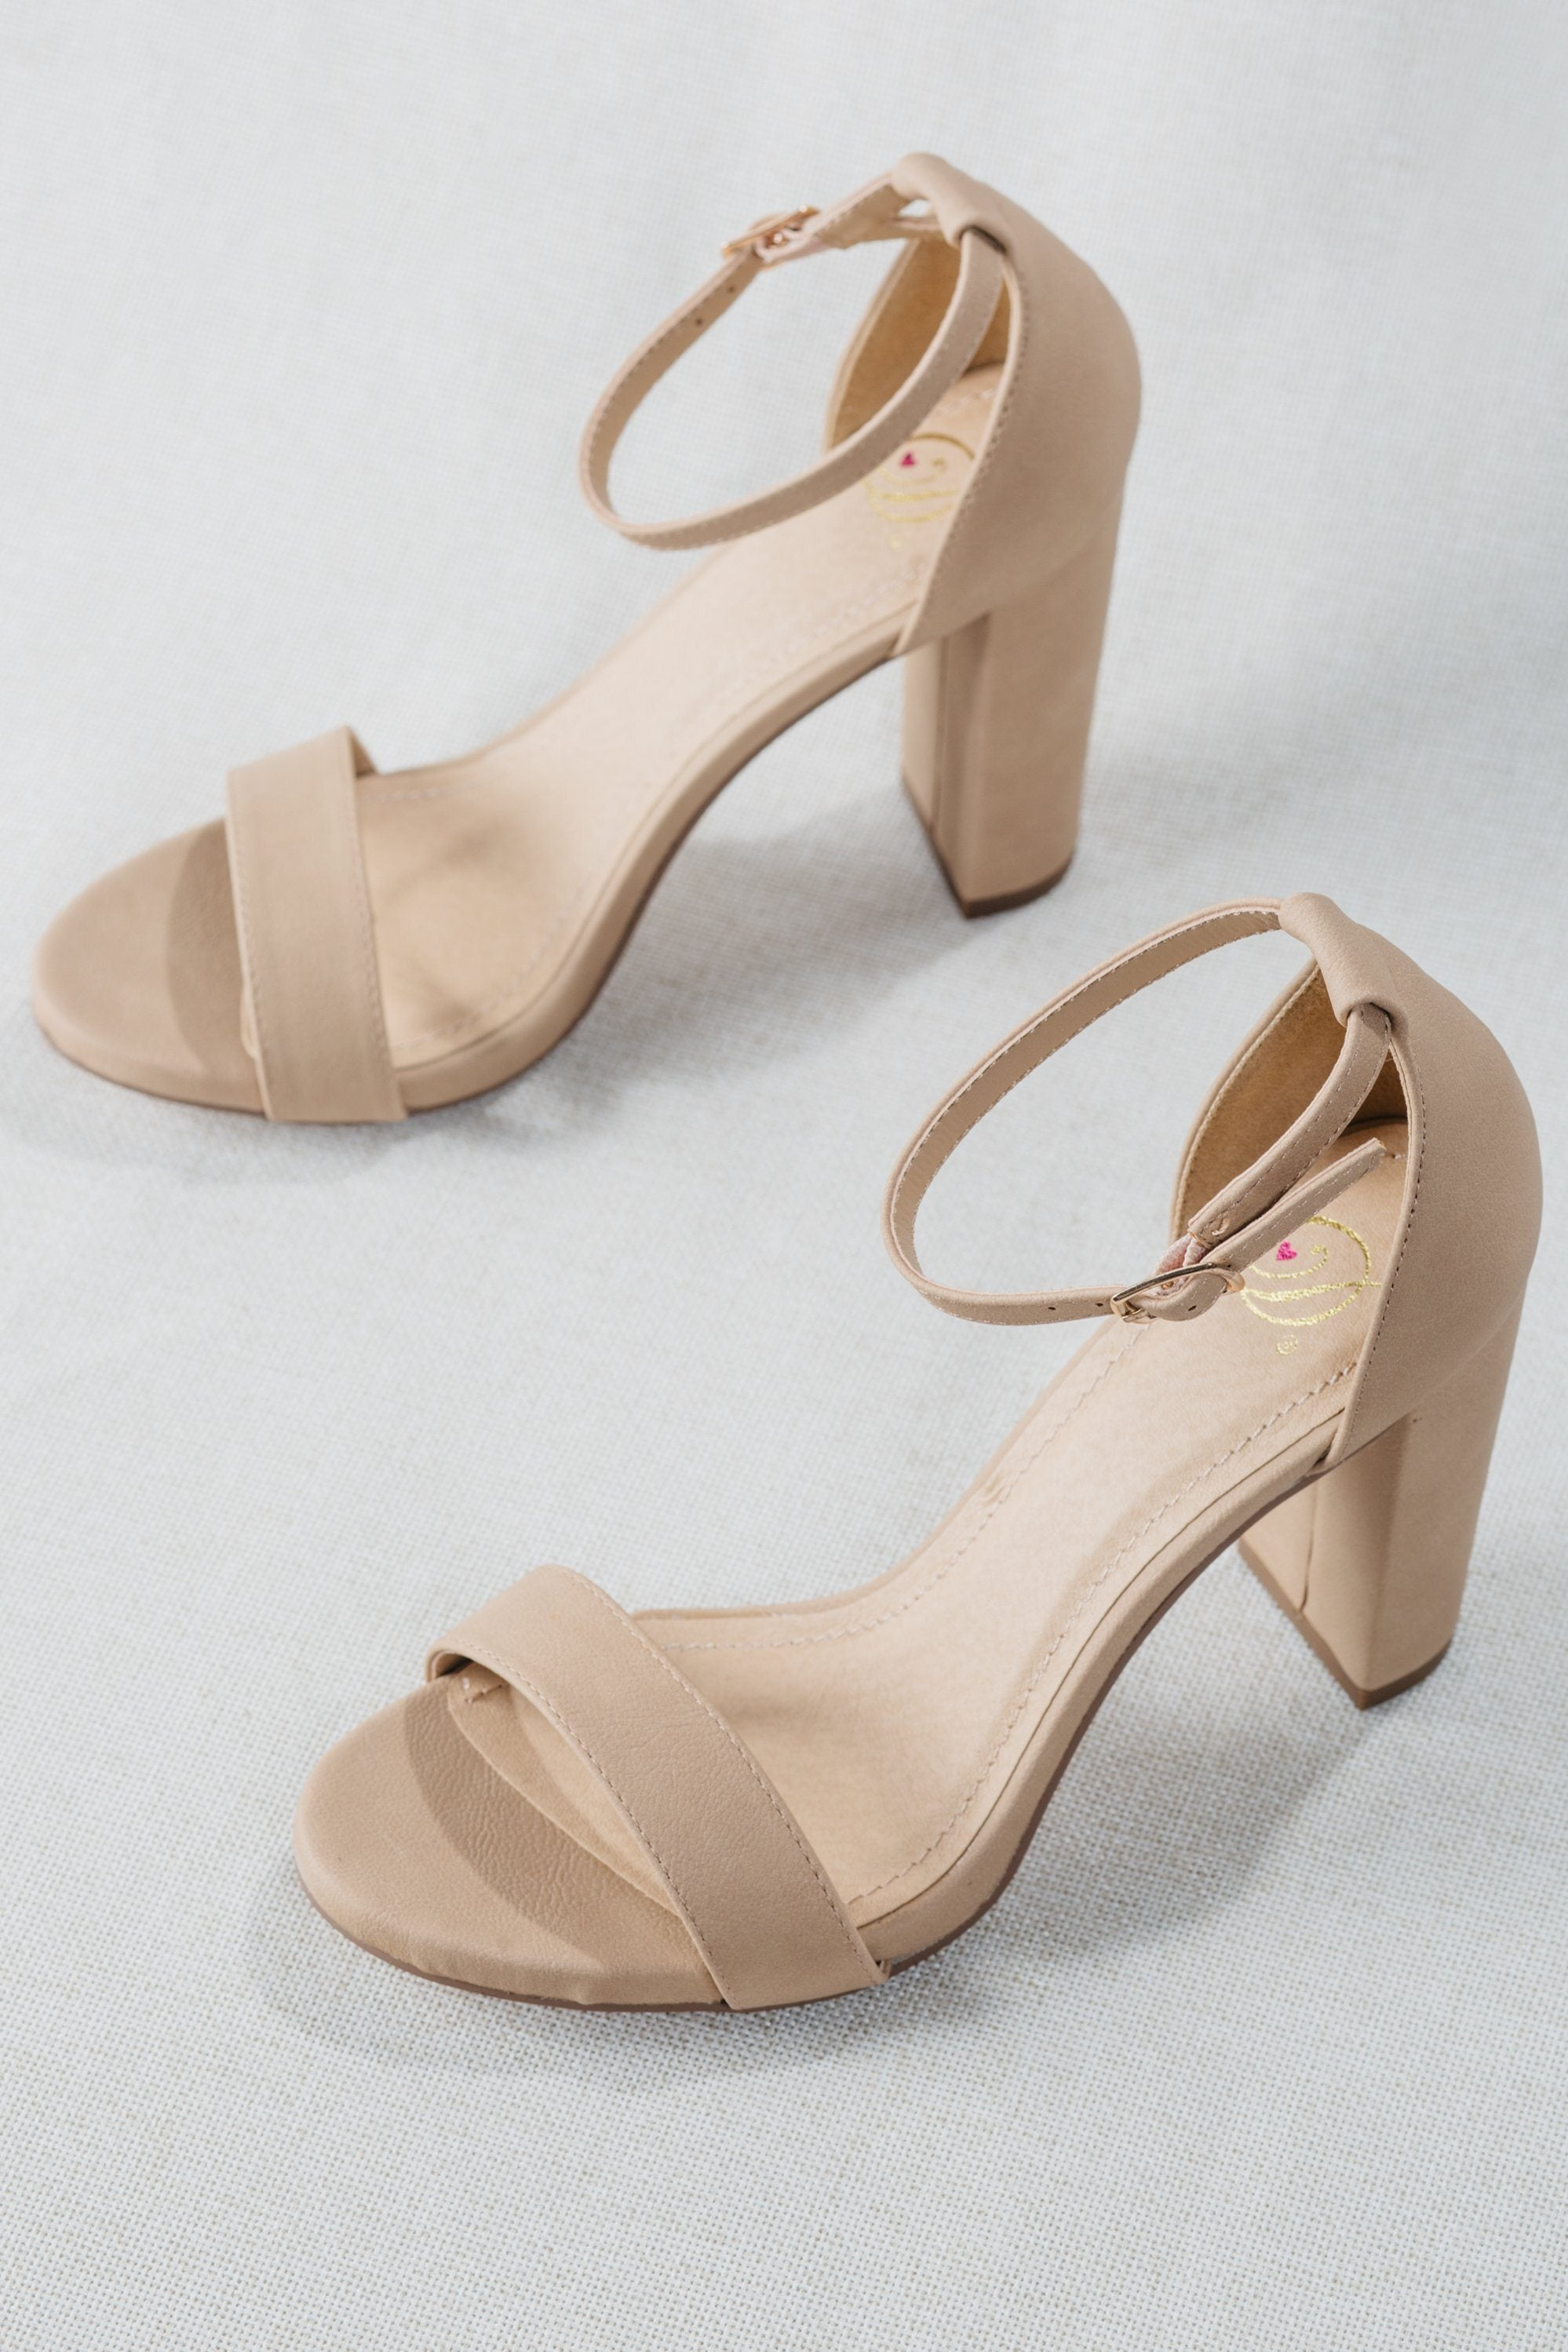 latte, nude, natural, strappy, block, heel